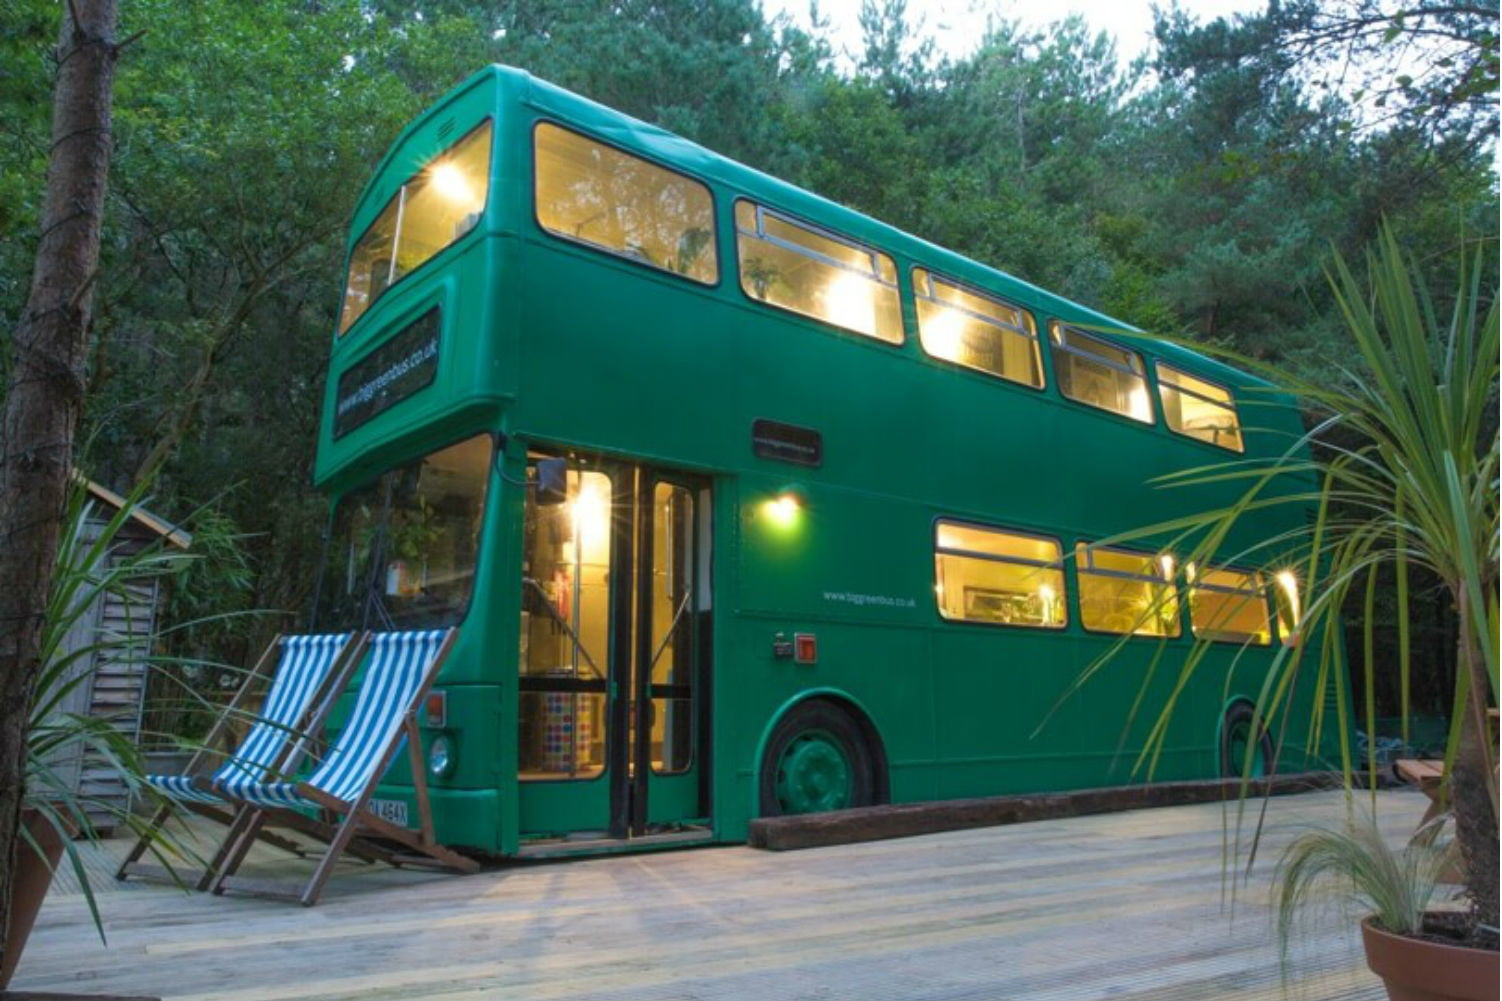 These 10 amazing bus conversions put a new spin on mobile living